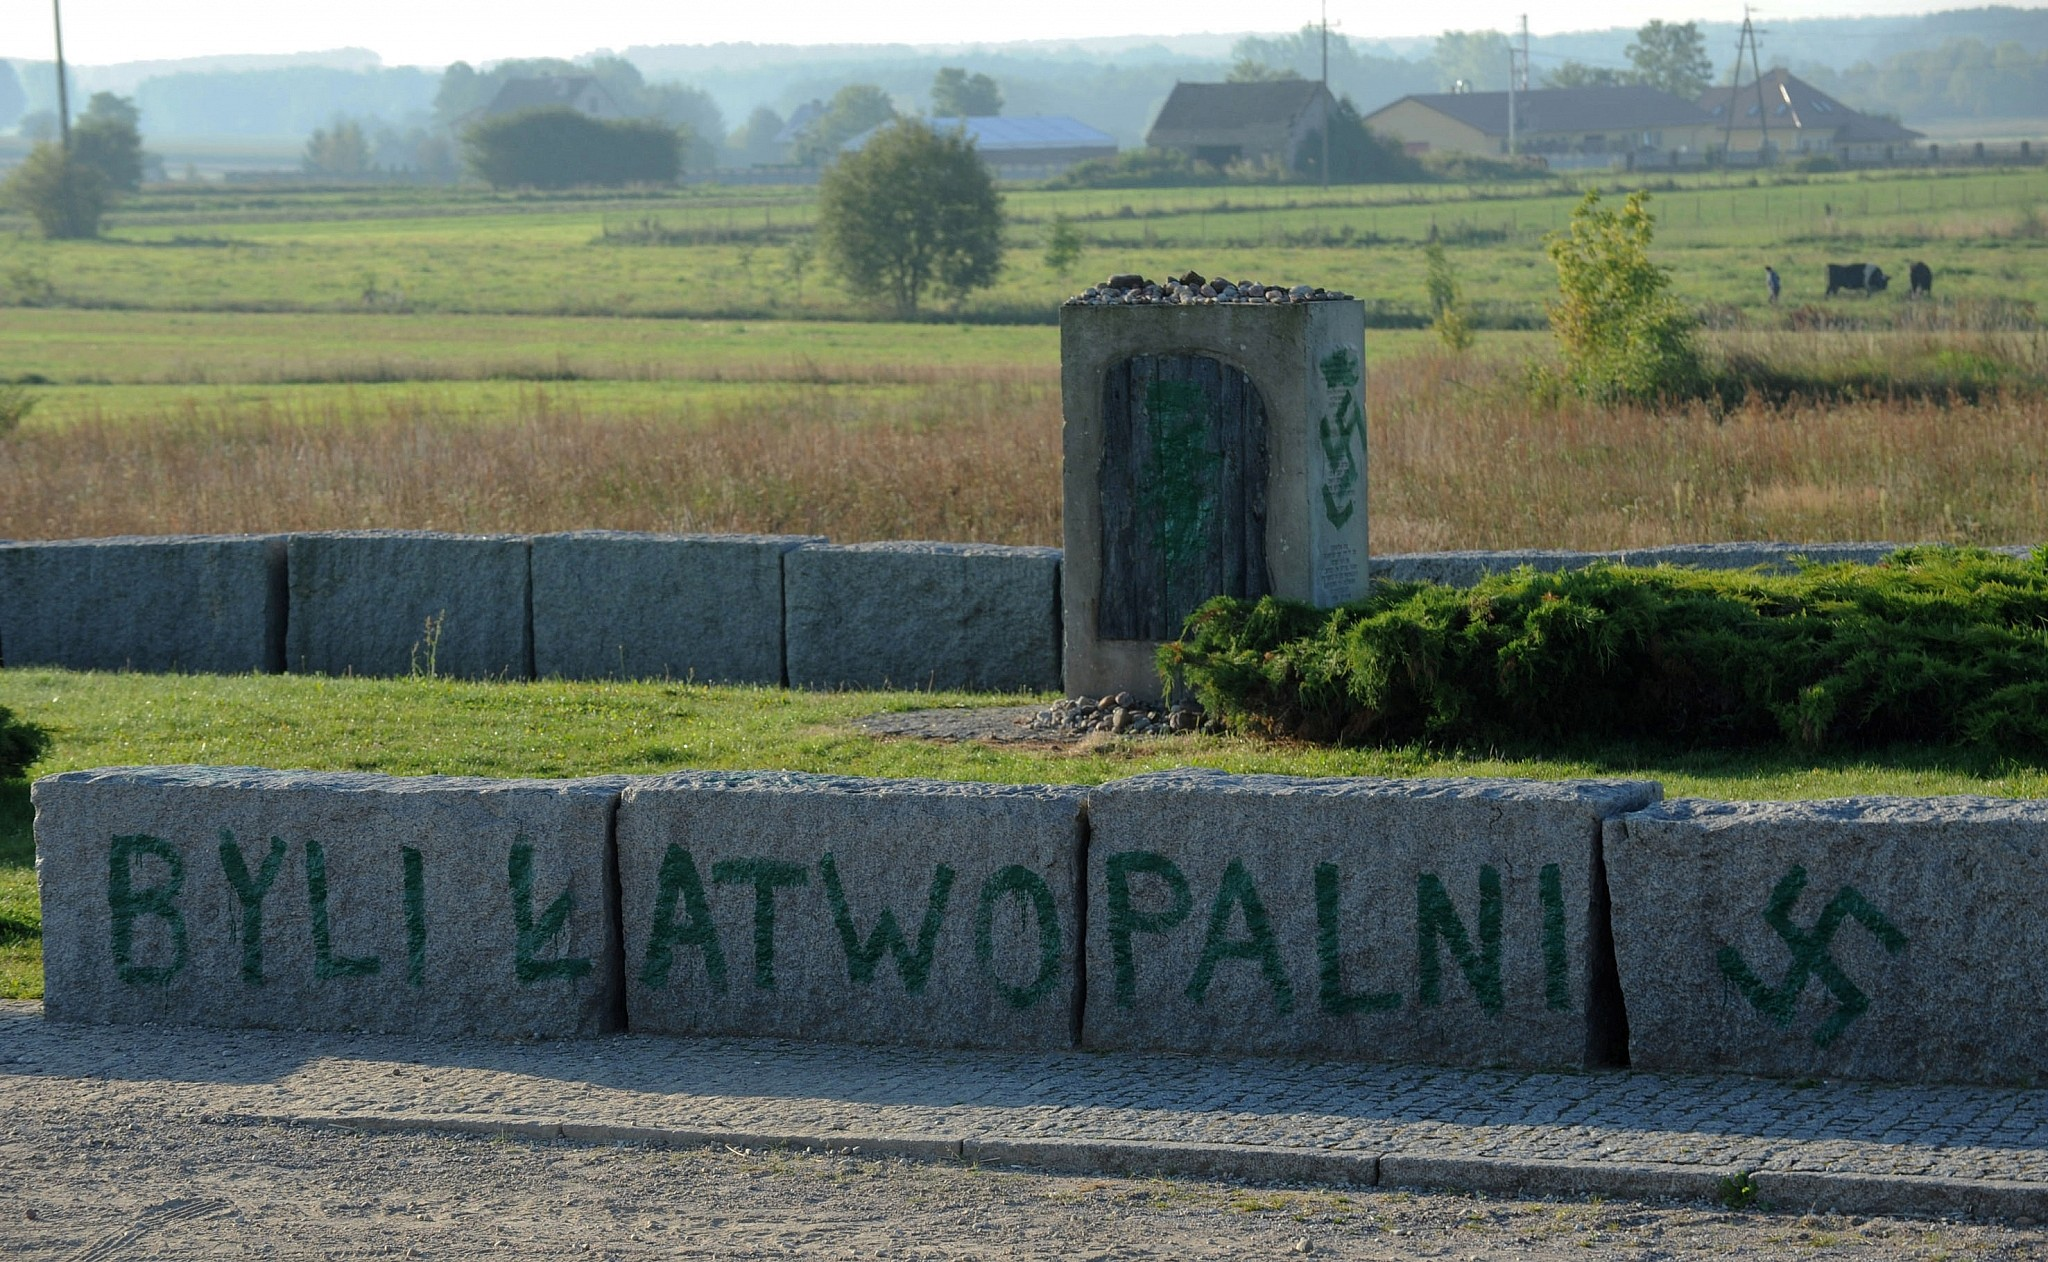 'Israel's schools will address Polish law about death camps'